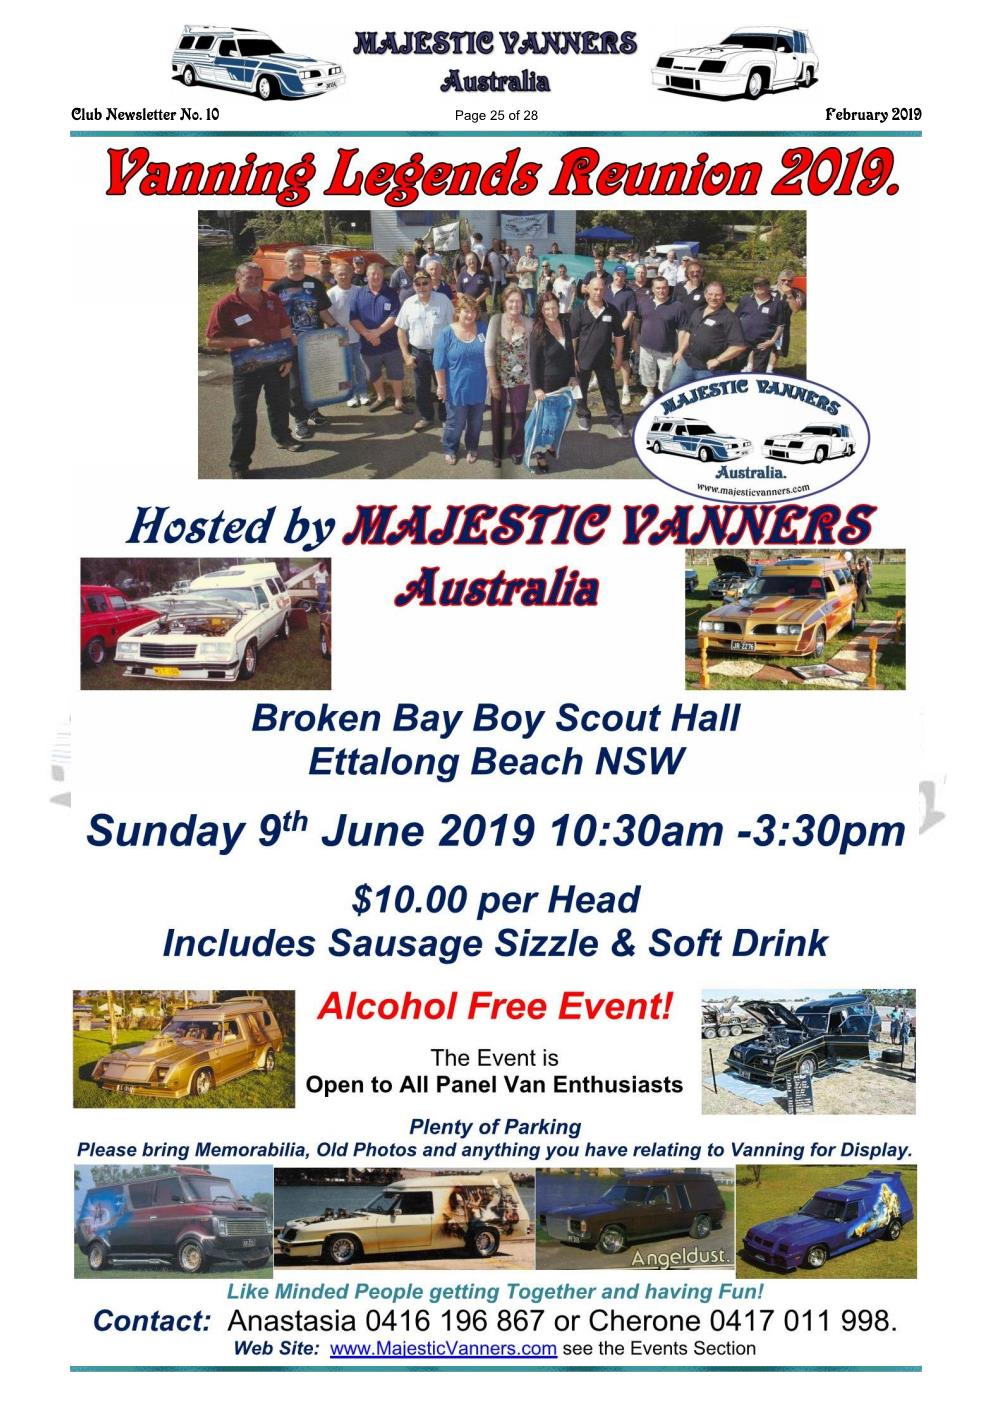 MAJESTIC VANNERS Newsletter Issue No: 10 February 2019 Mv_new34